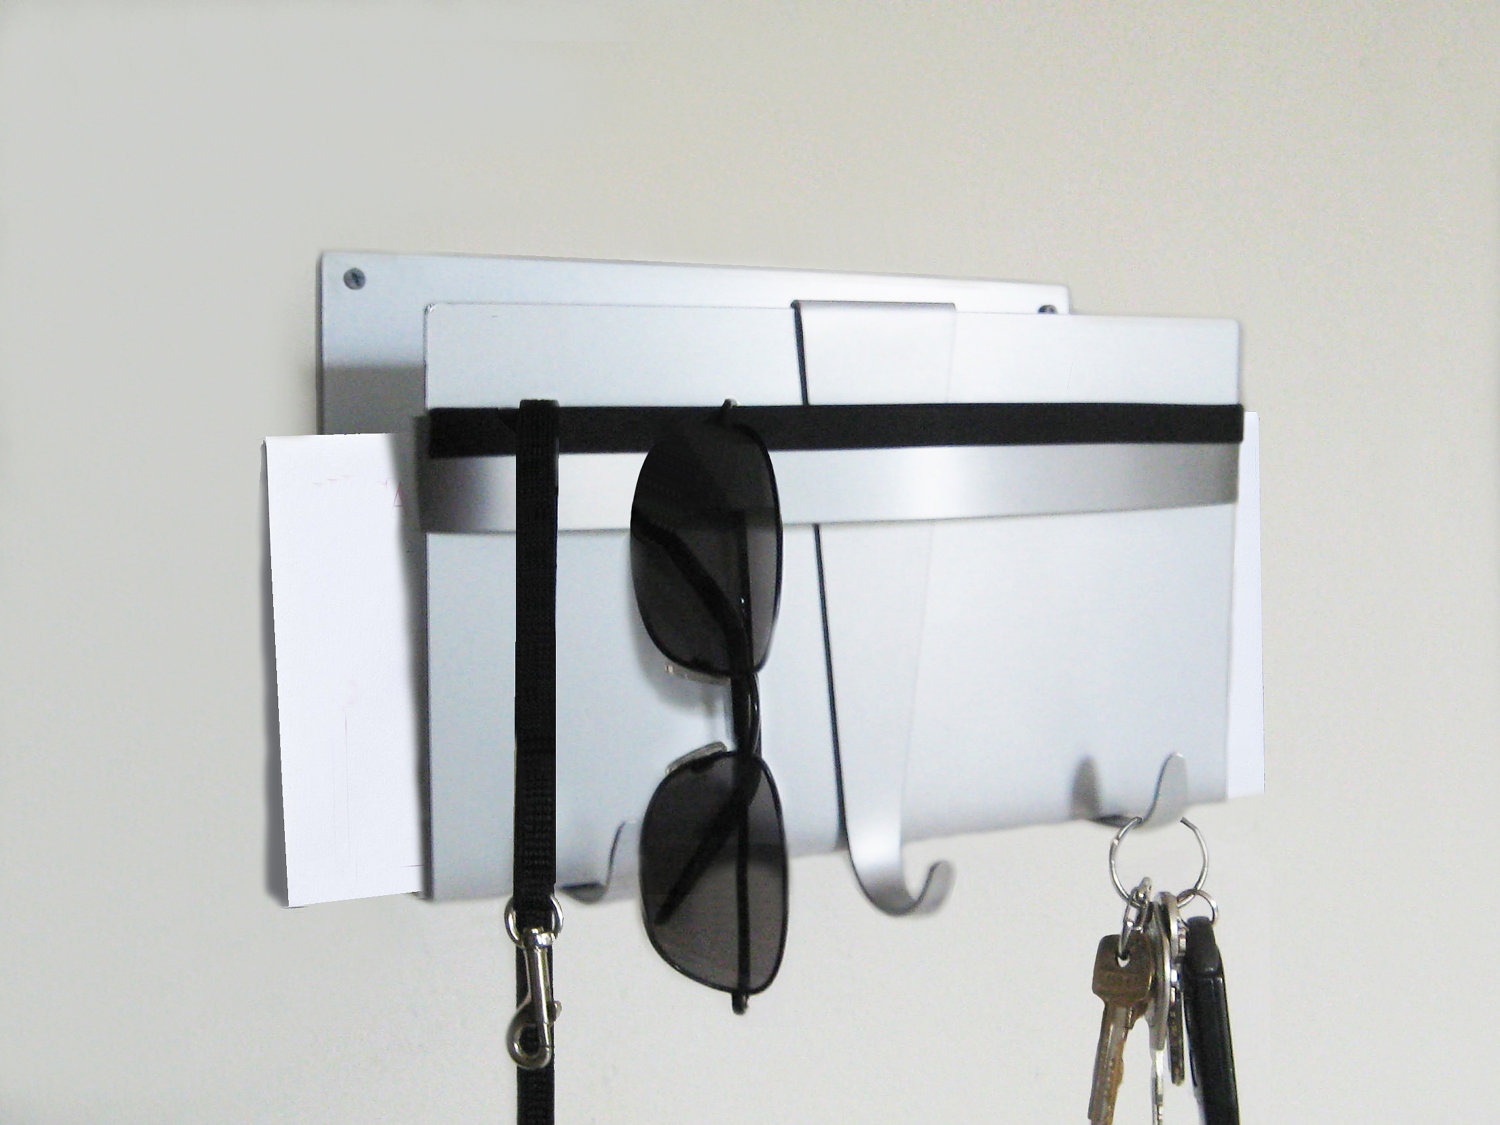 Uncategorized Key Holder For The Wall manage your keys in a proper place with impressive key holders for modern wall metal hooks and sunglasses plus mail storage